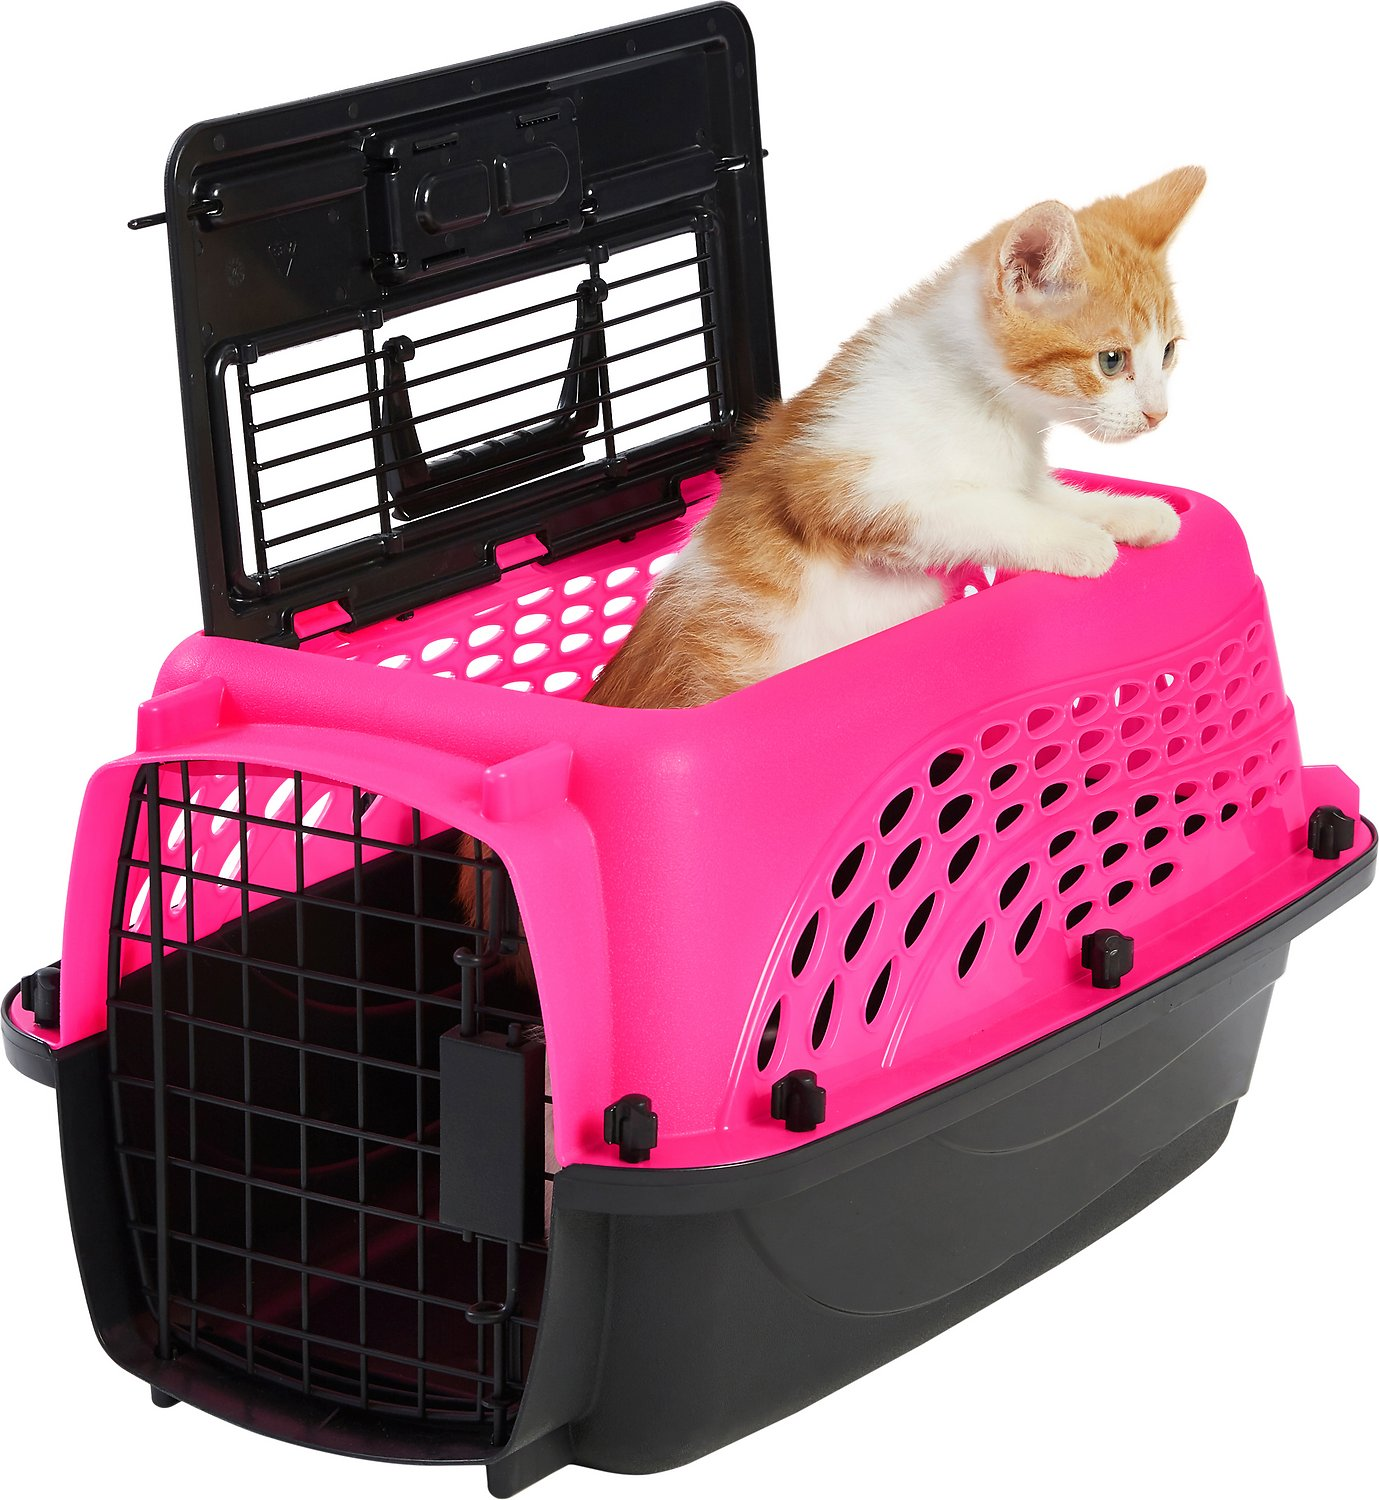 3ae6980e1fd Frisco Two Door Top Load Plastic Kennel, Pink, 19-in - Chewy.com